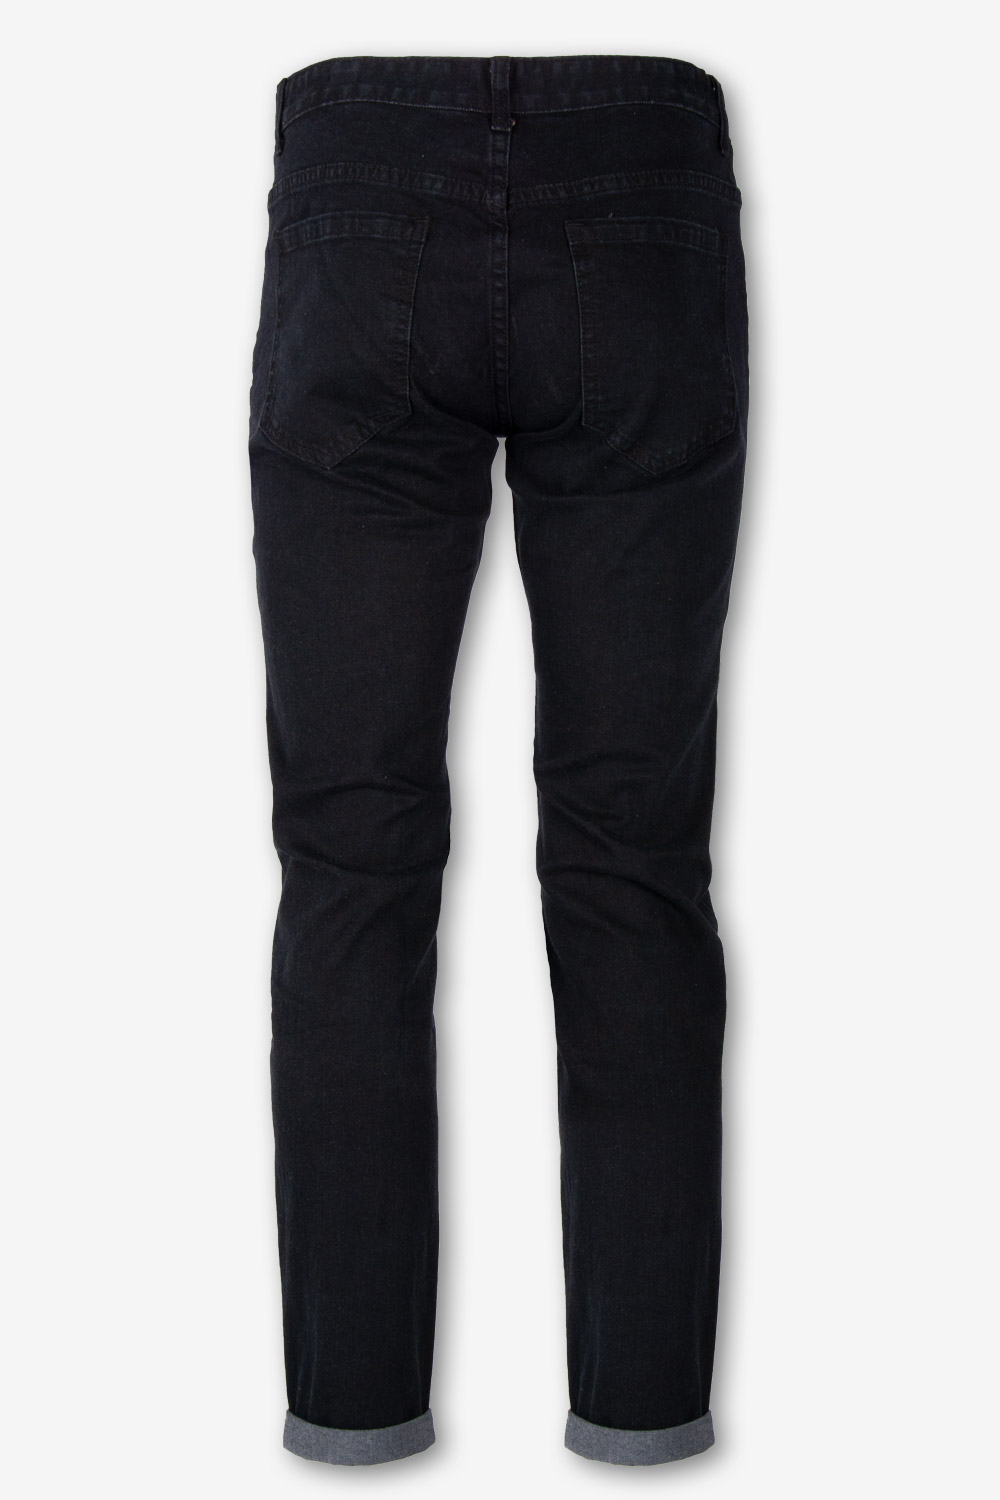 Pantalone Jeans 5 tasche Stretch Nero Black Denim